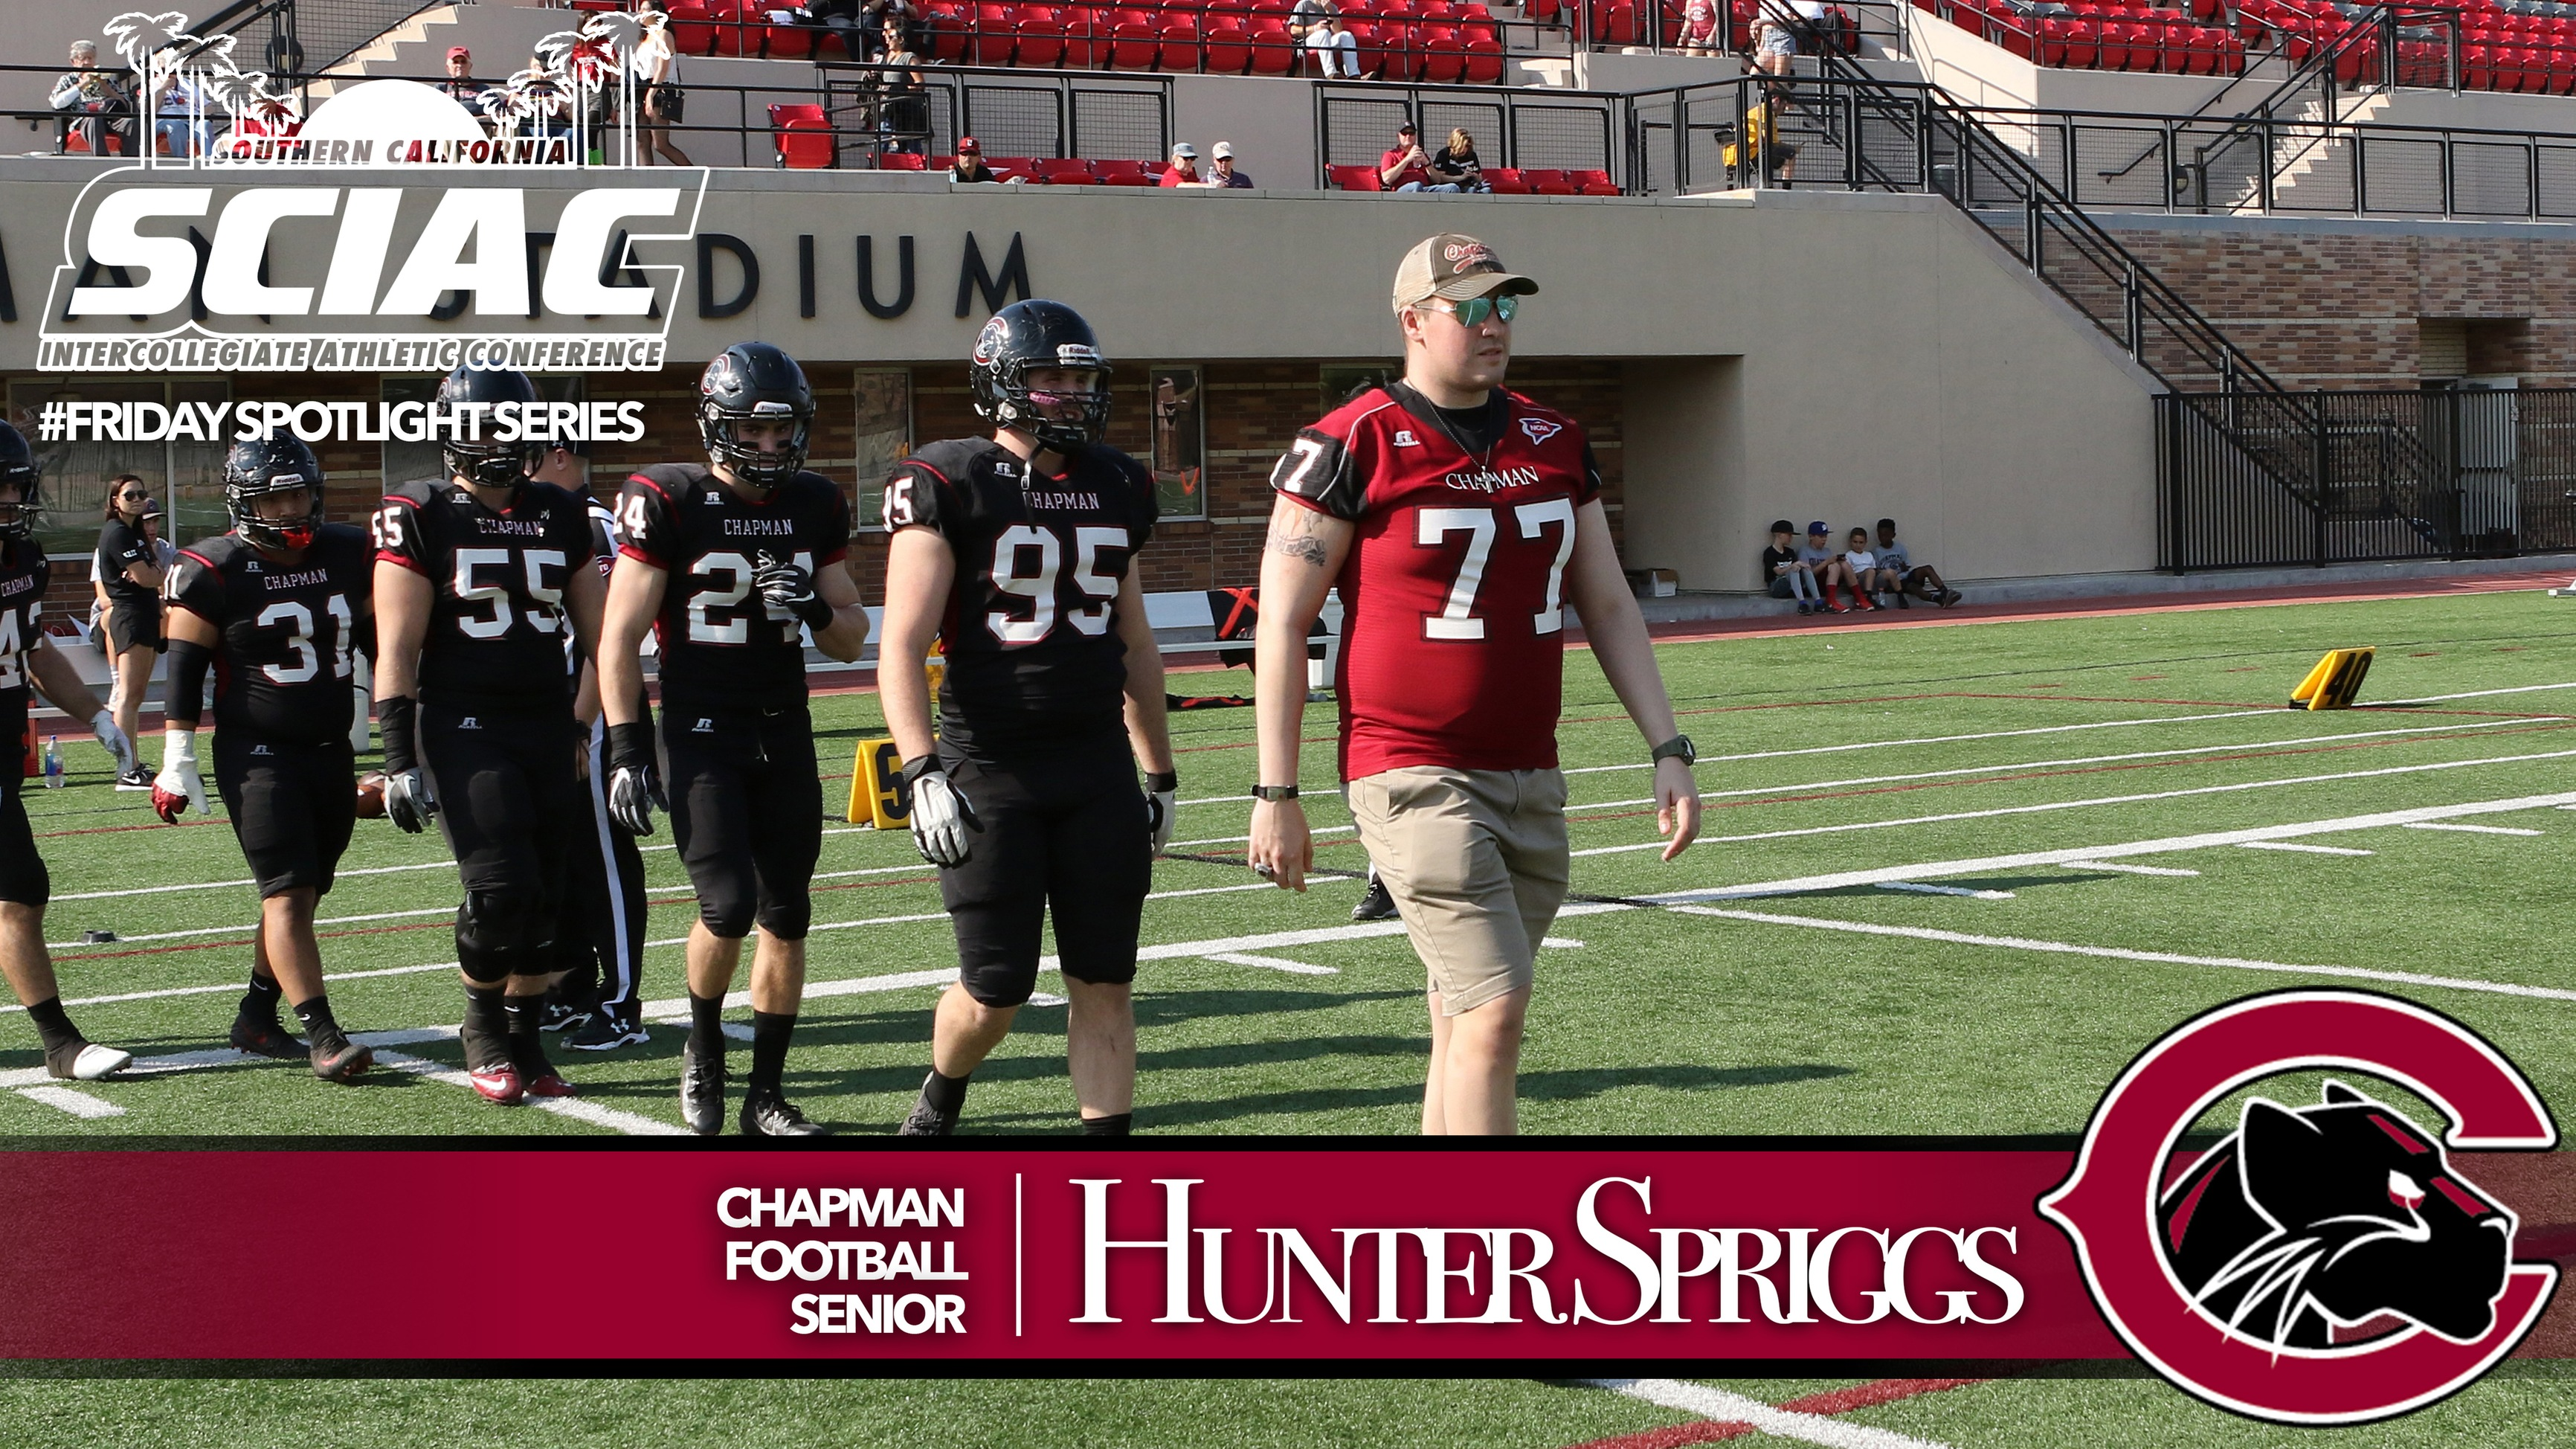 Meet Hunter Spriggs - Chapman Football